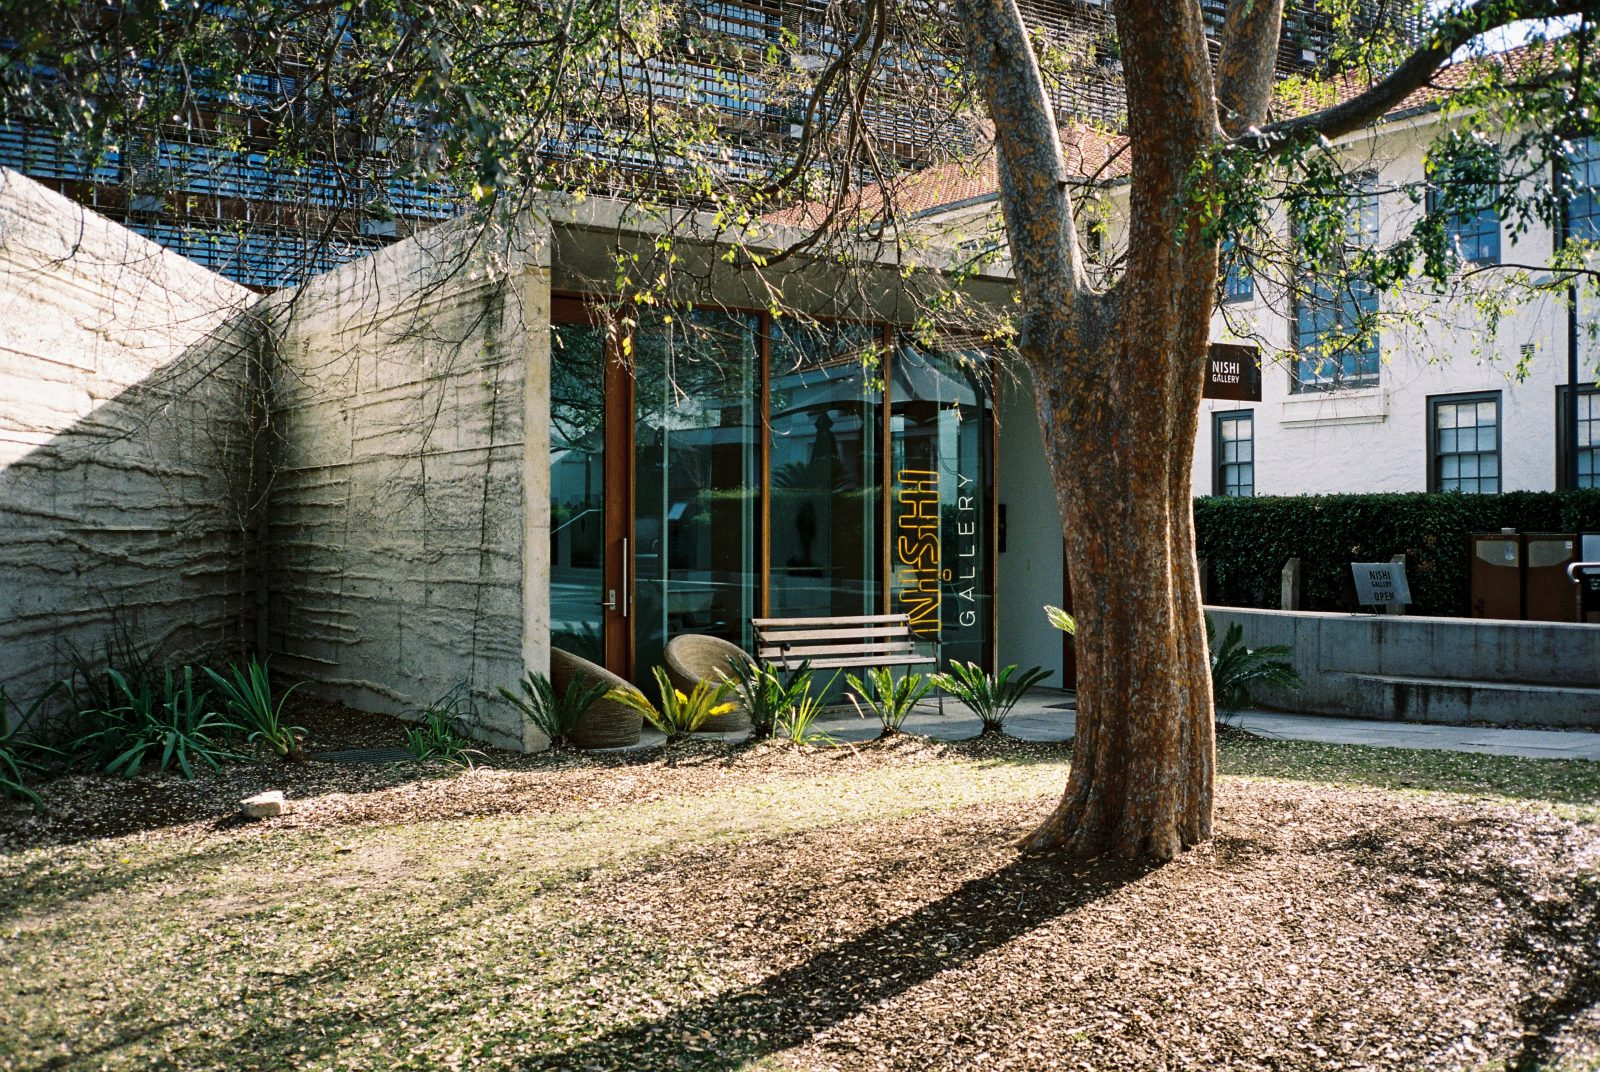 The exterior of Nishi Gallery. Surrounded by gardens.